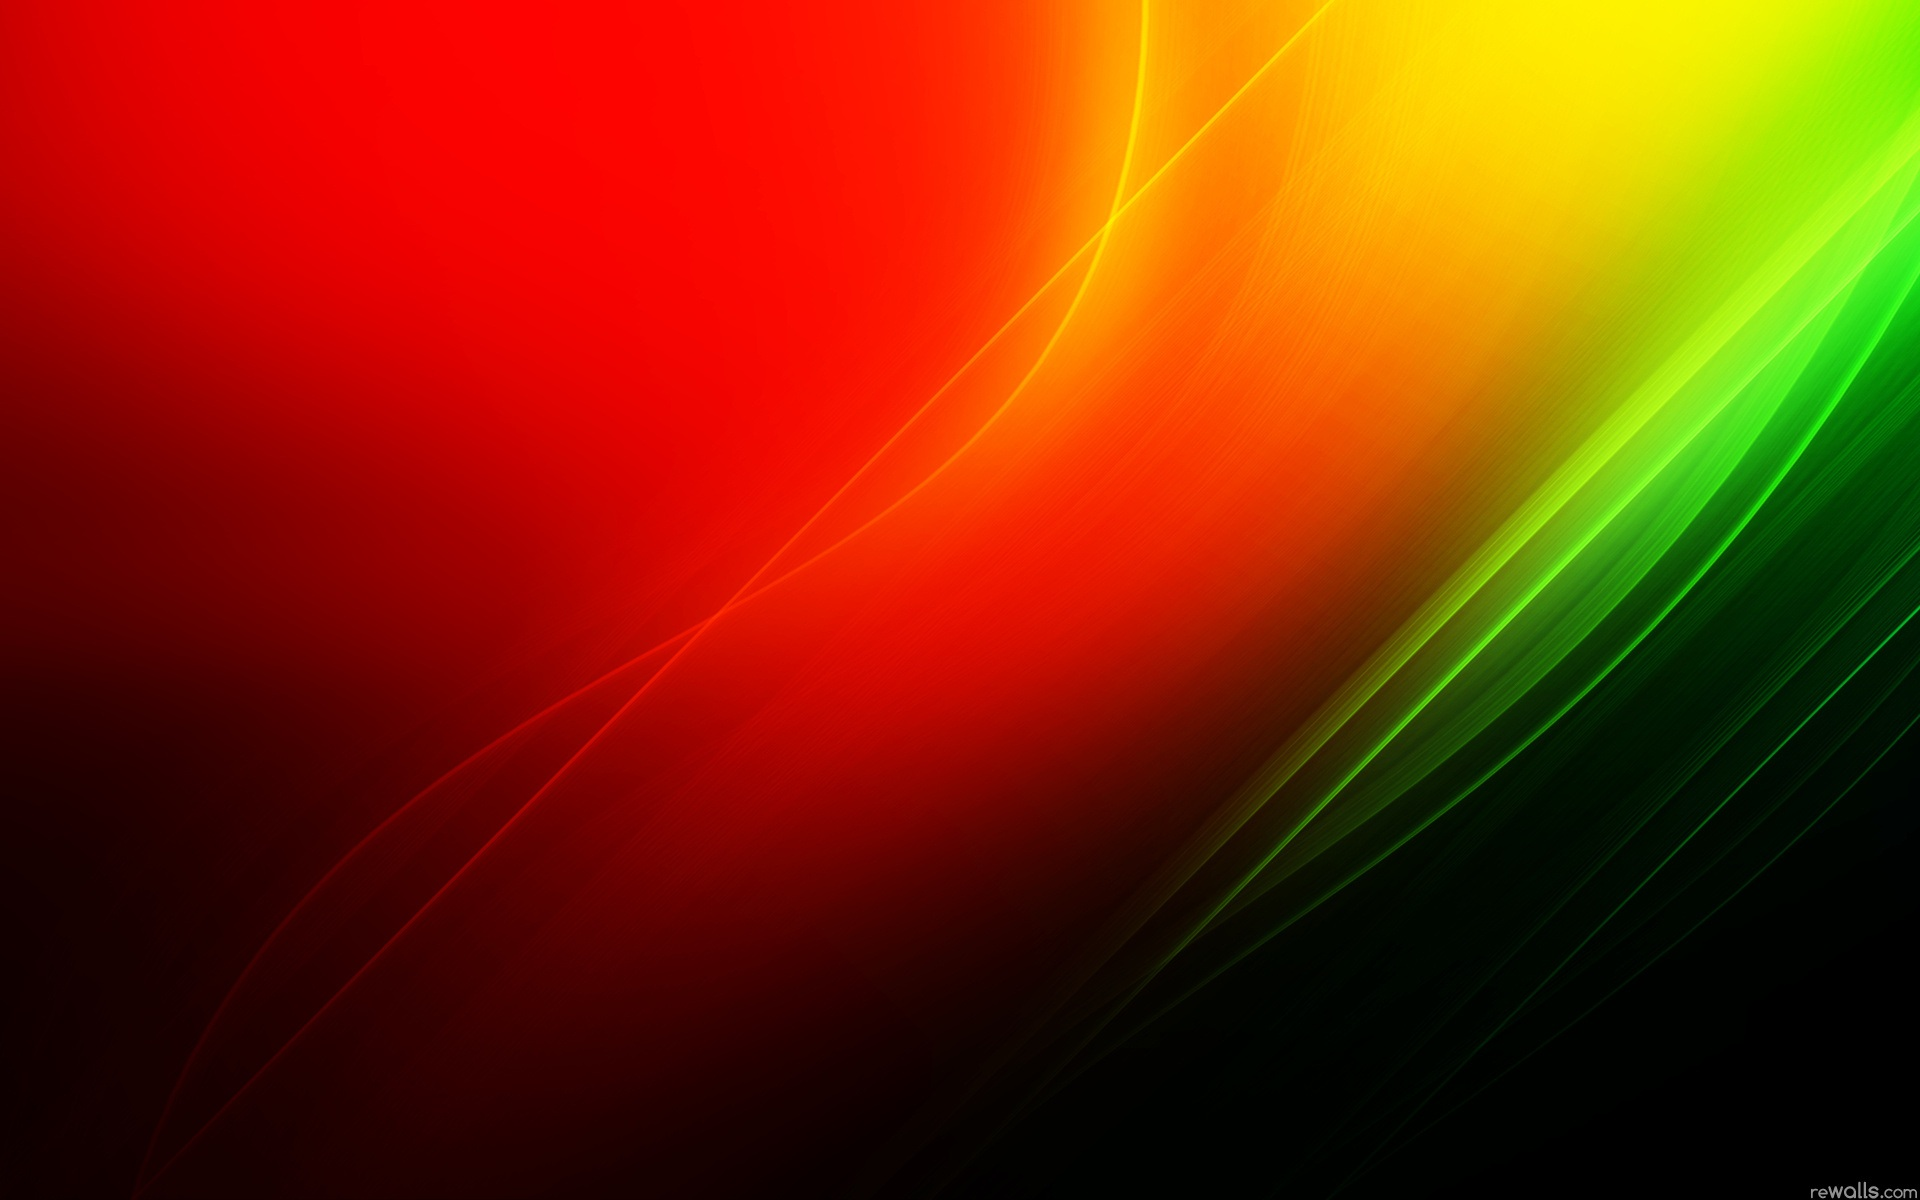 Wallpaper Red And Green Abstract Background 1920x1200 Hd